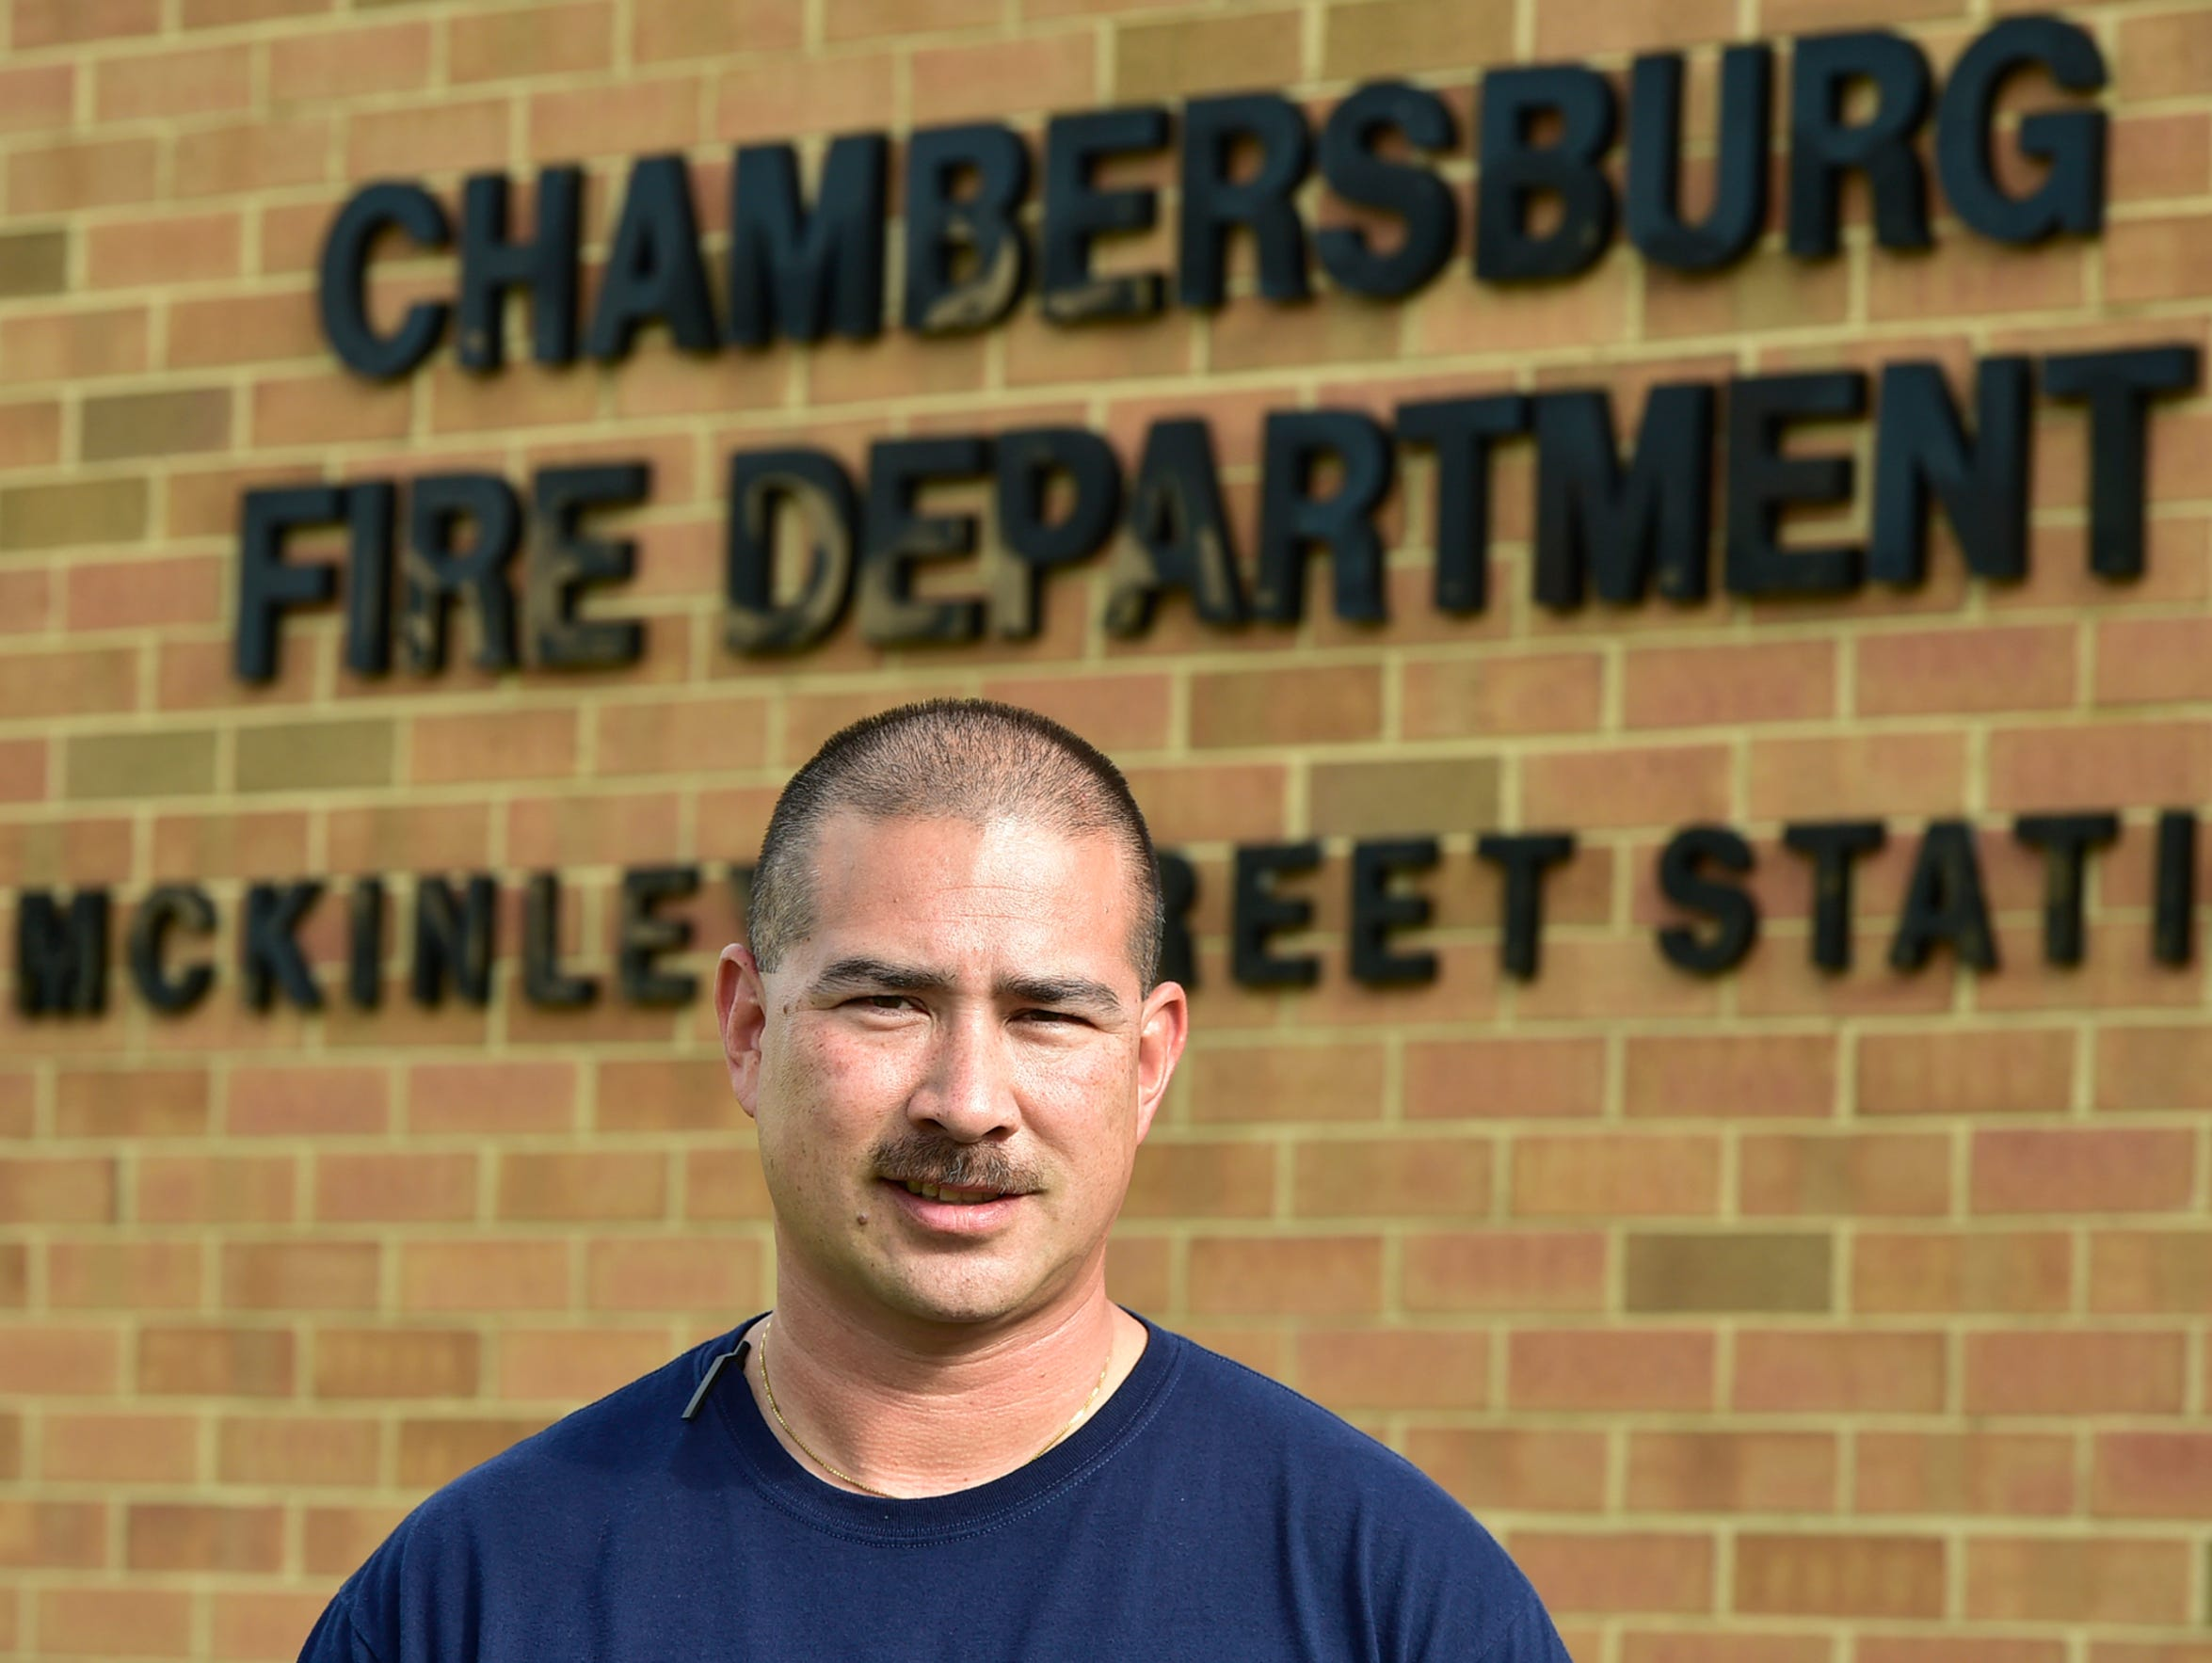 Tony Albright, Shippensburg, has been recognized by